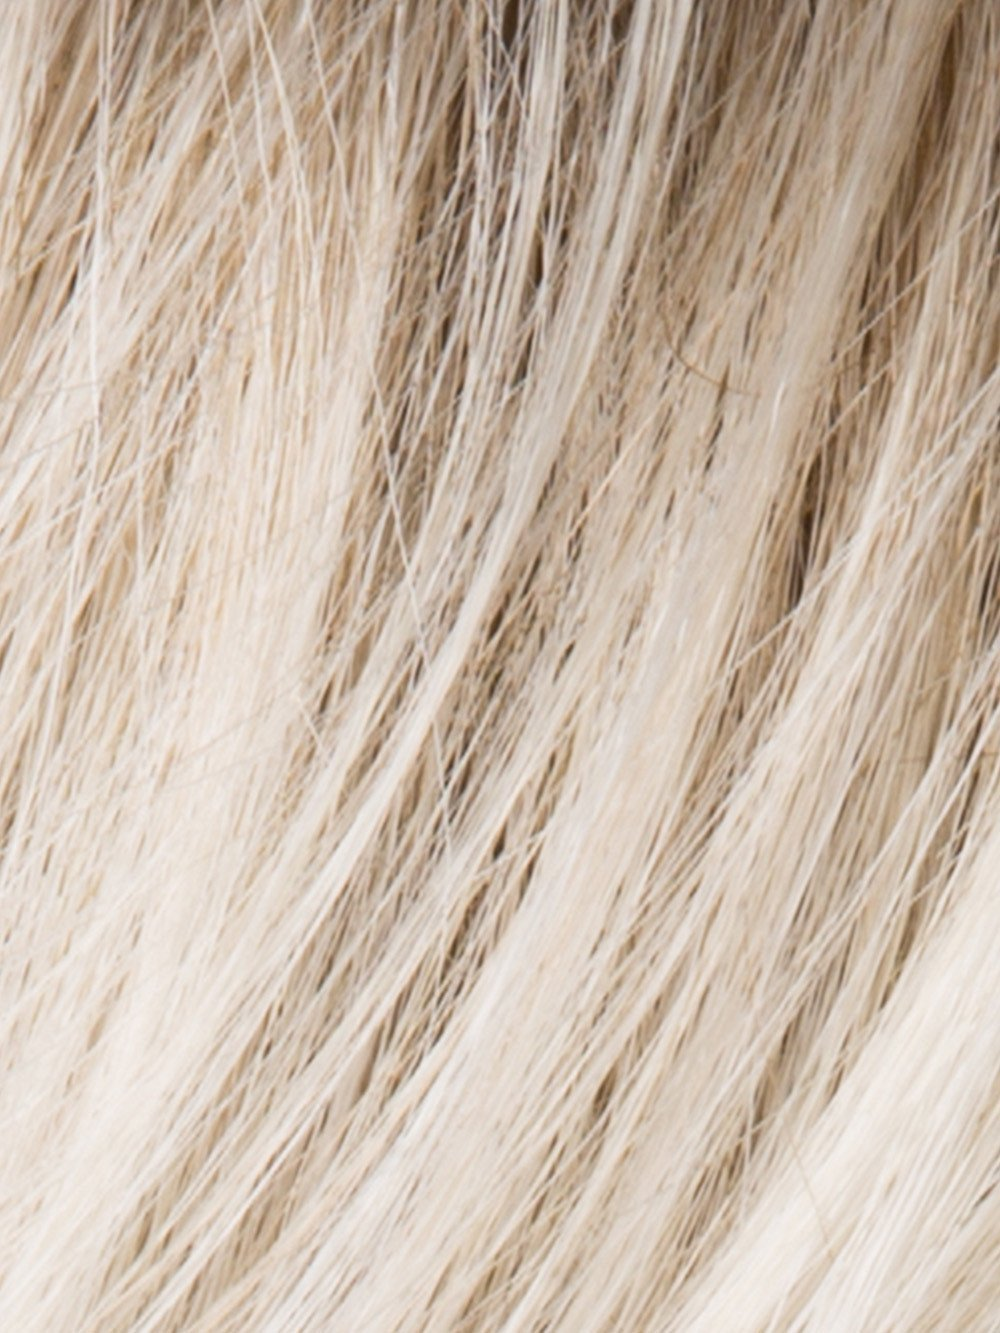 Light Champagne Rooted | Pearl Platinum and Light Golden Blonde Blend with Medium Brown Roots